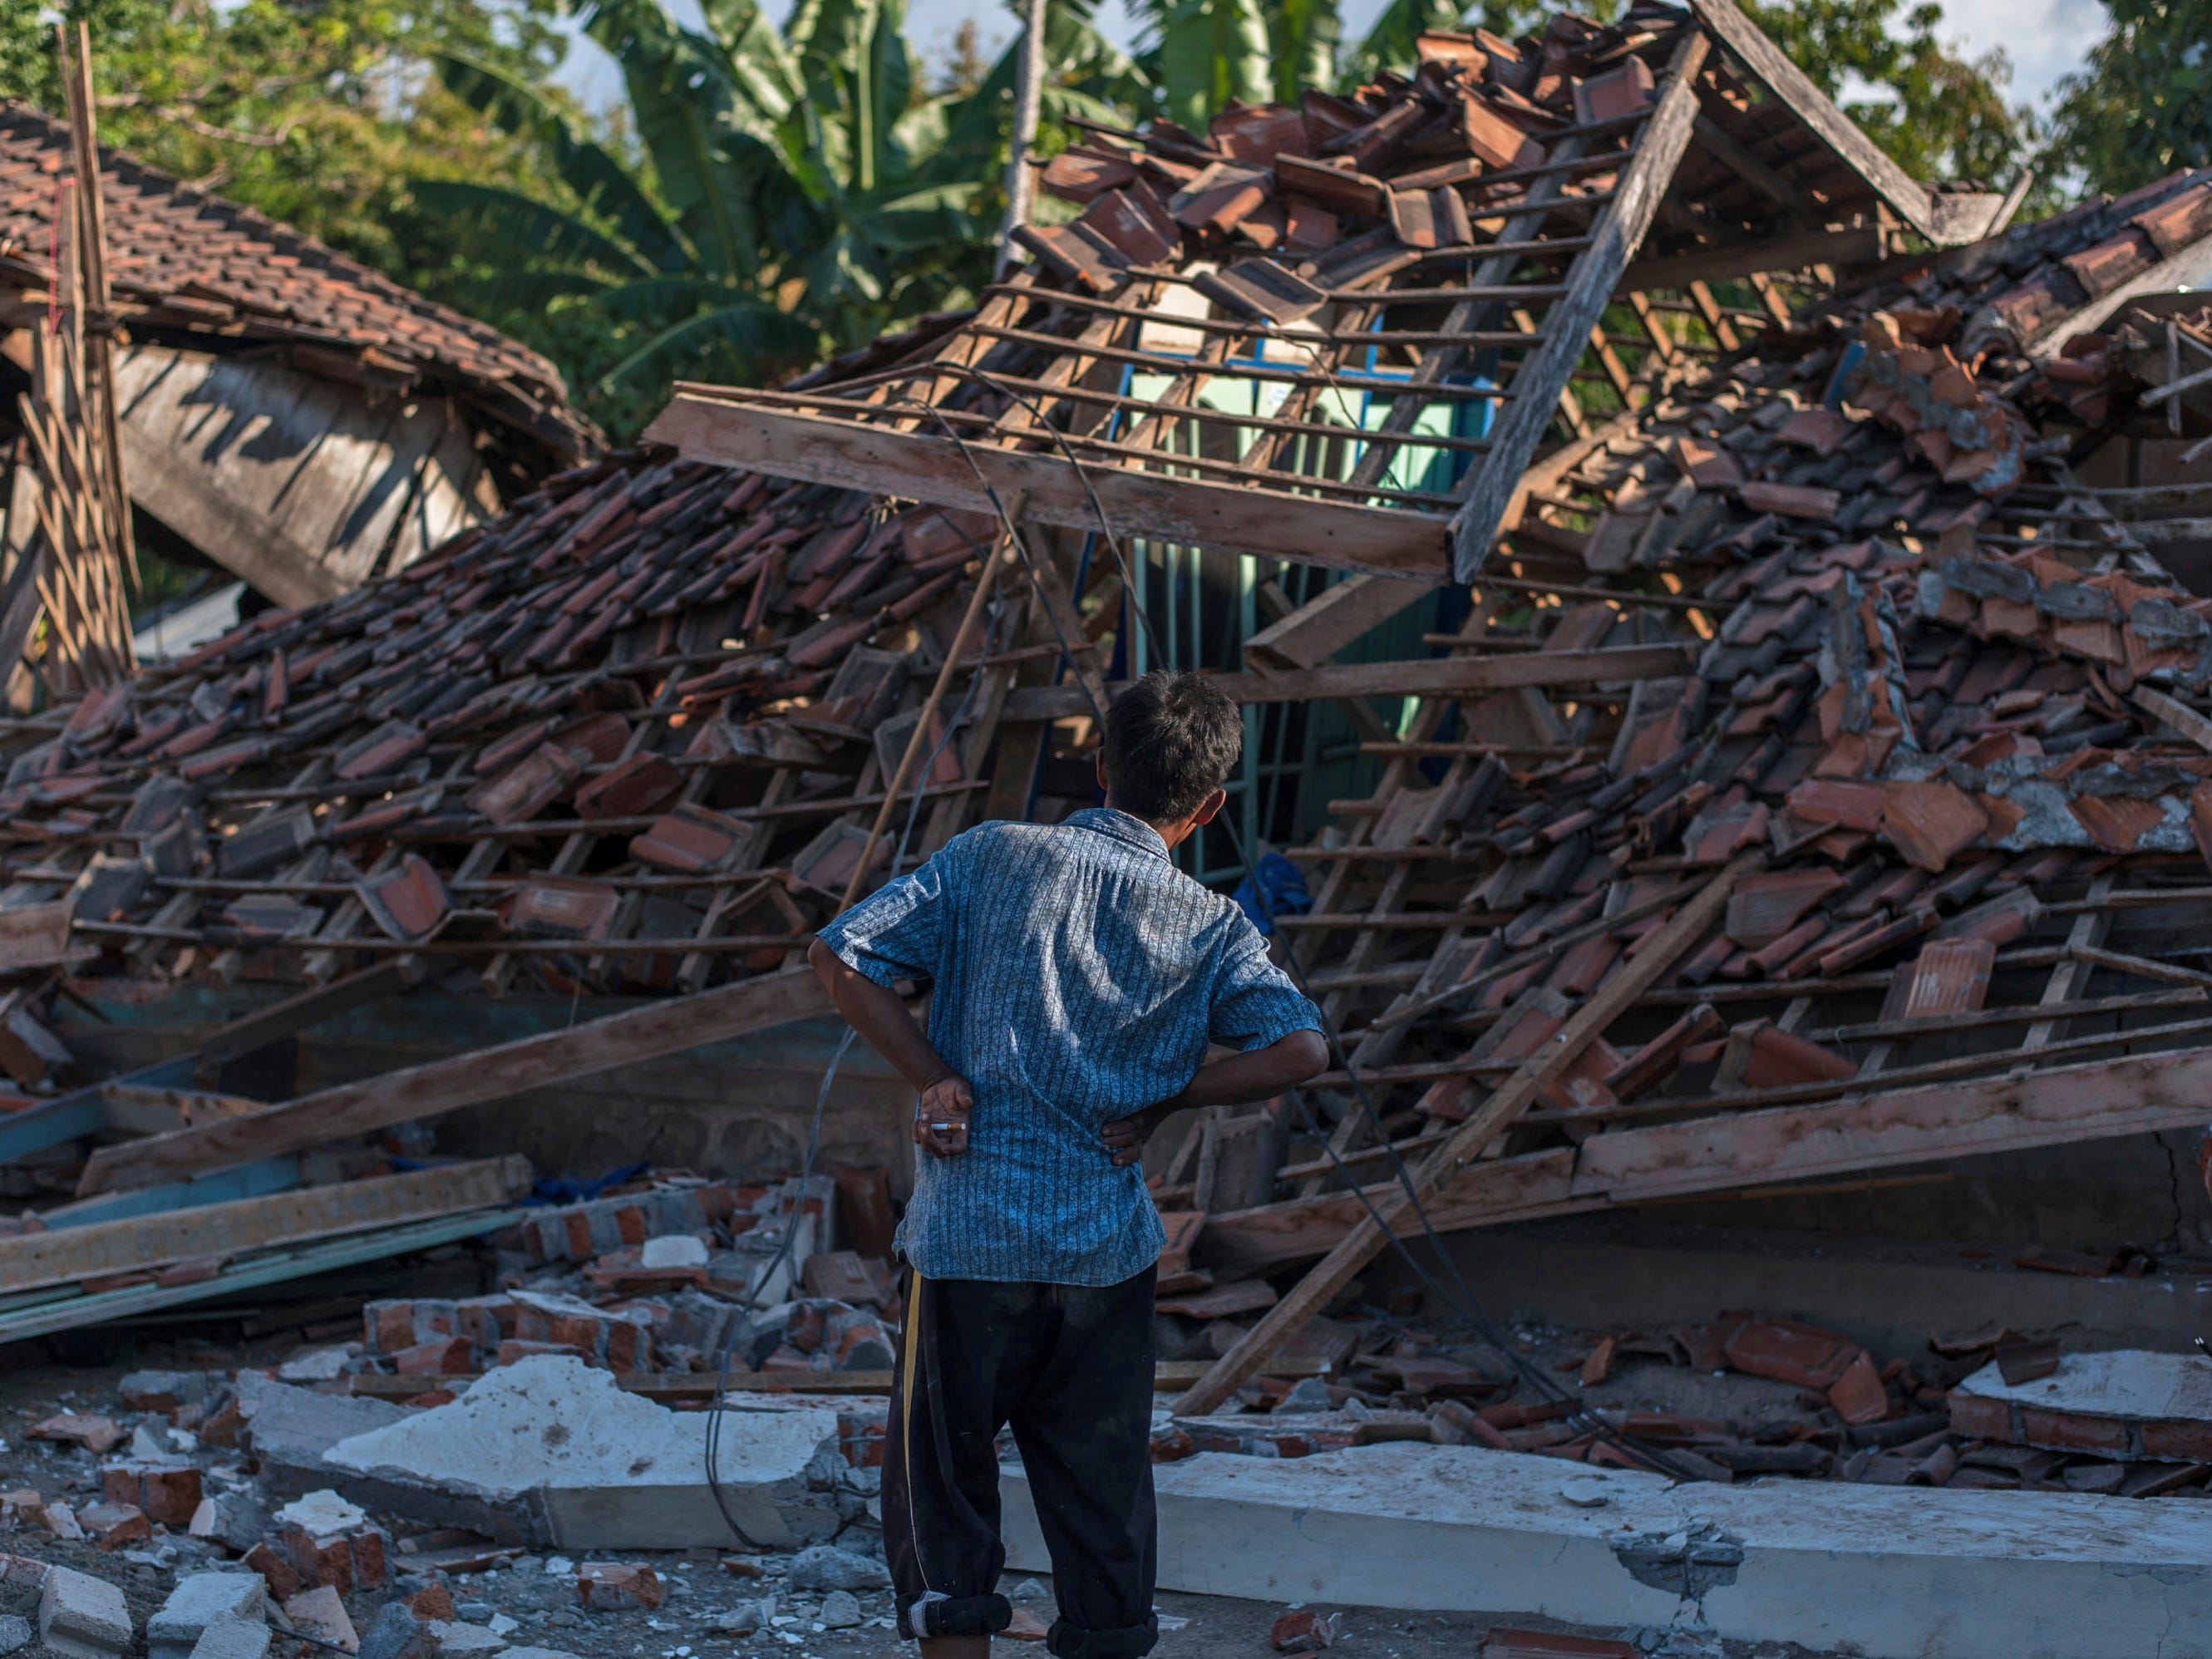 A man inspects the ruins of houses at a village affected by Sunday's earthquake in Kayangan, Lombok Island, Indonesia, Tuesday, Aug. 7, 2018. The north of Lombok has been devastated by the magnitude 7.0 quake that struck Sunday night, damaging thousands of buildings and killing a large number of people.